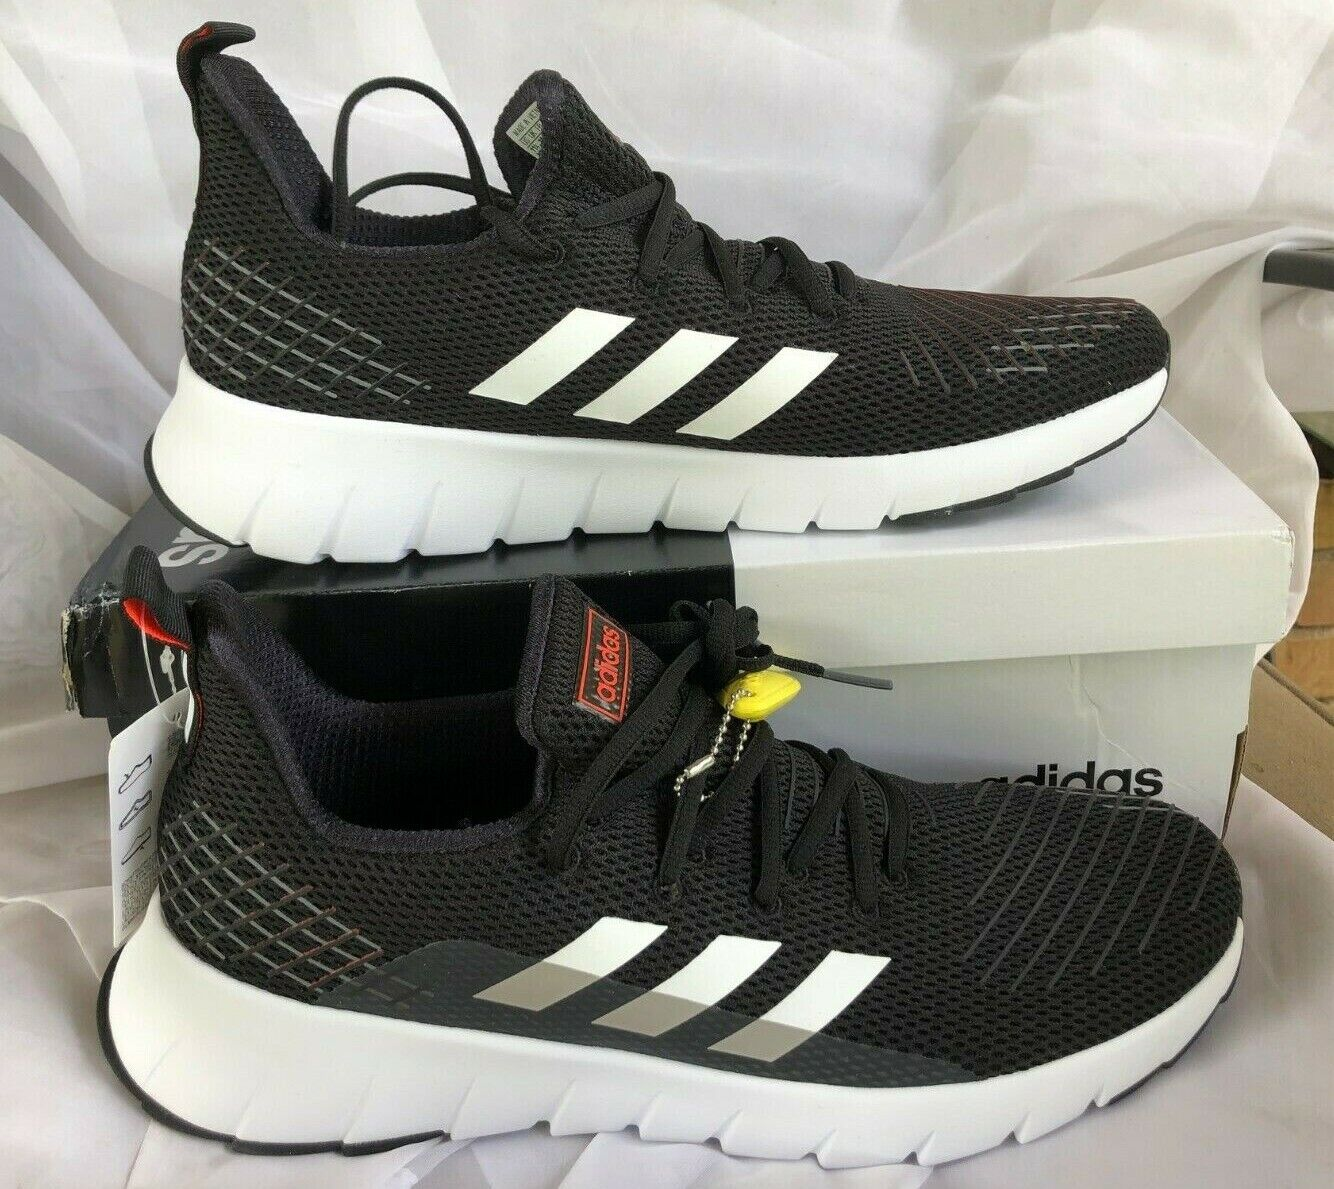 NEW adidas Asweego Sneakers Men's Athletic Shoes Black/White